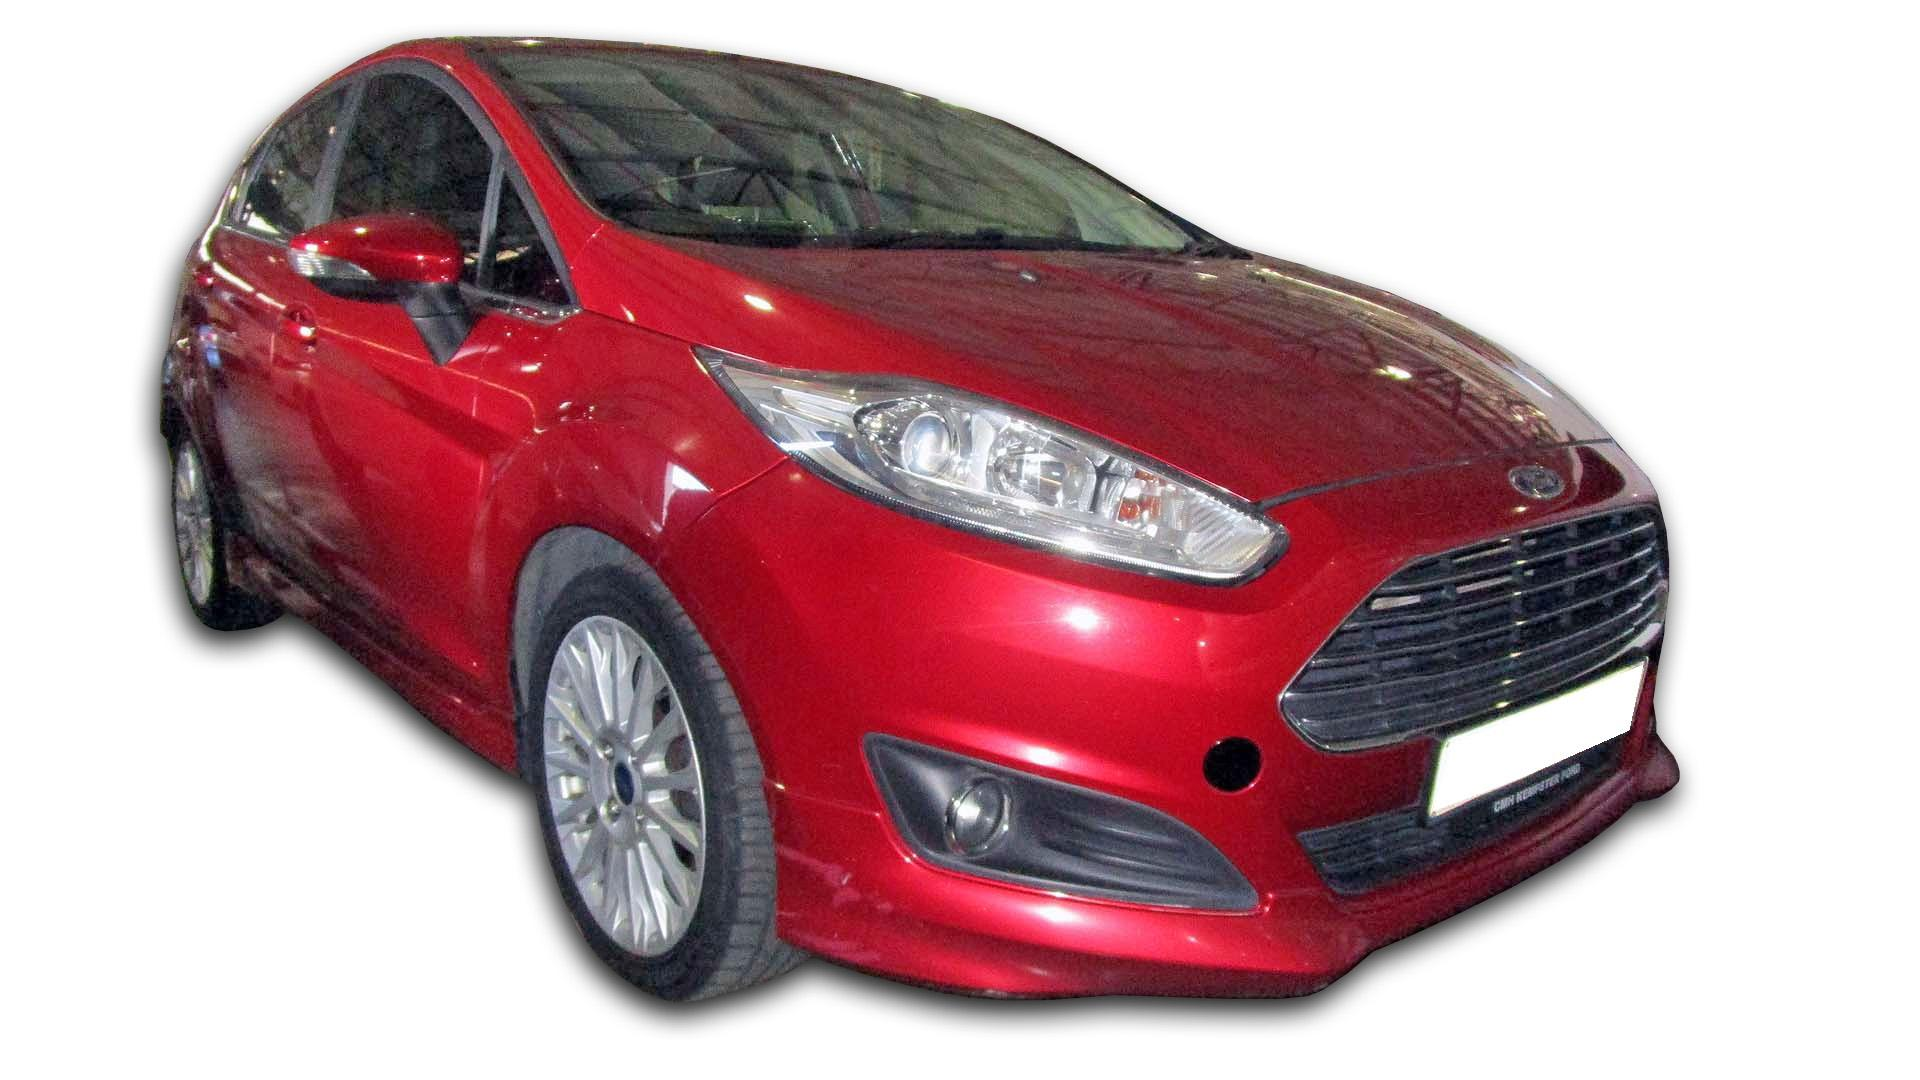 Ford Fiesta 1.0 Ecoboost AM